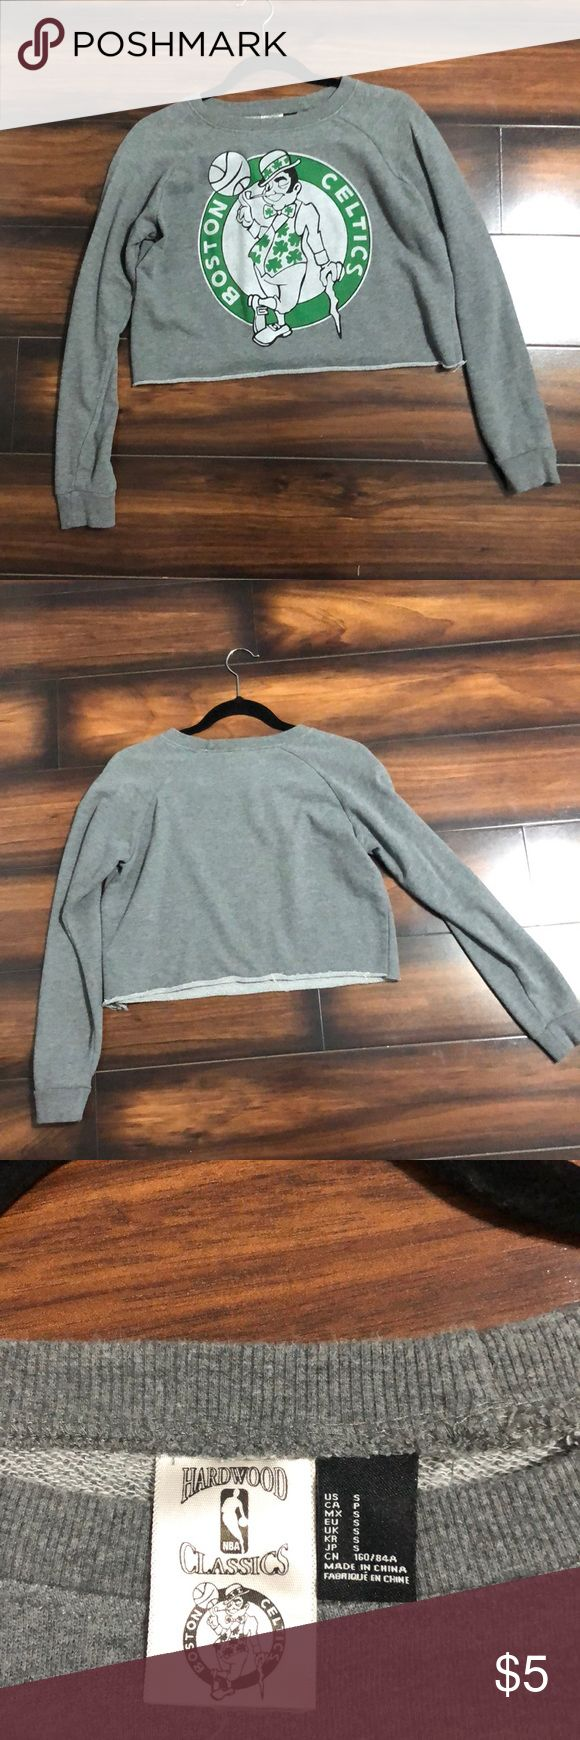 Forever 21 Cropped Celtics Sweatshirt Grey cropped Celtics sweatshirt! Only worn once! Super cute with high waisted leggings and sneakers!💕 Forever 21 Tops Sweatshirts & Hoodies